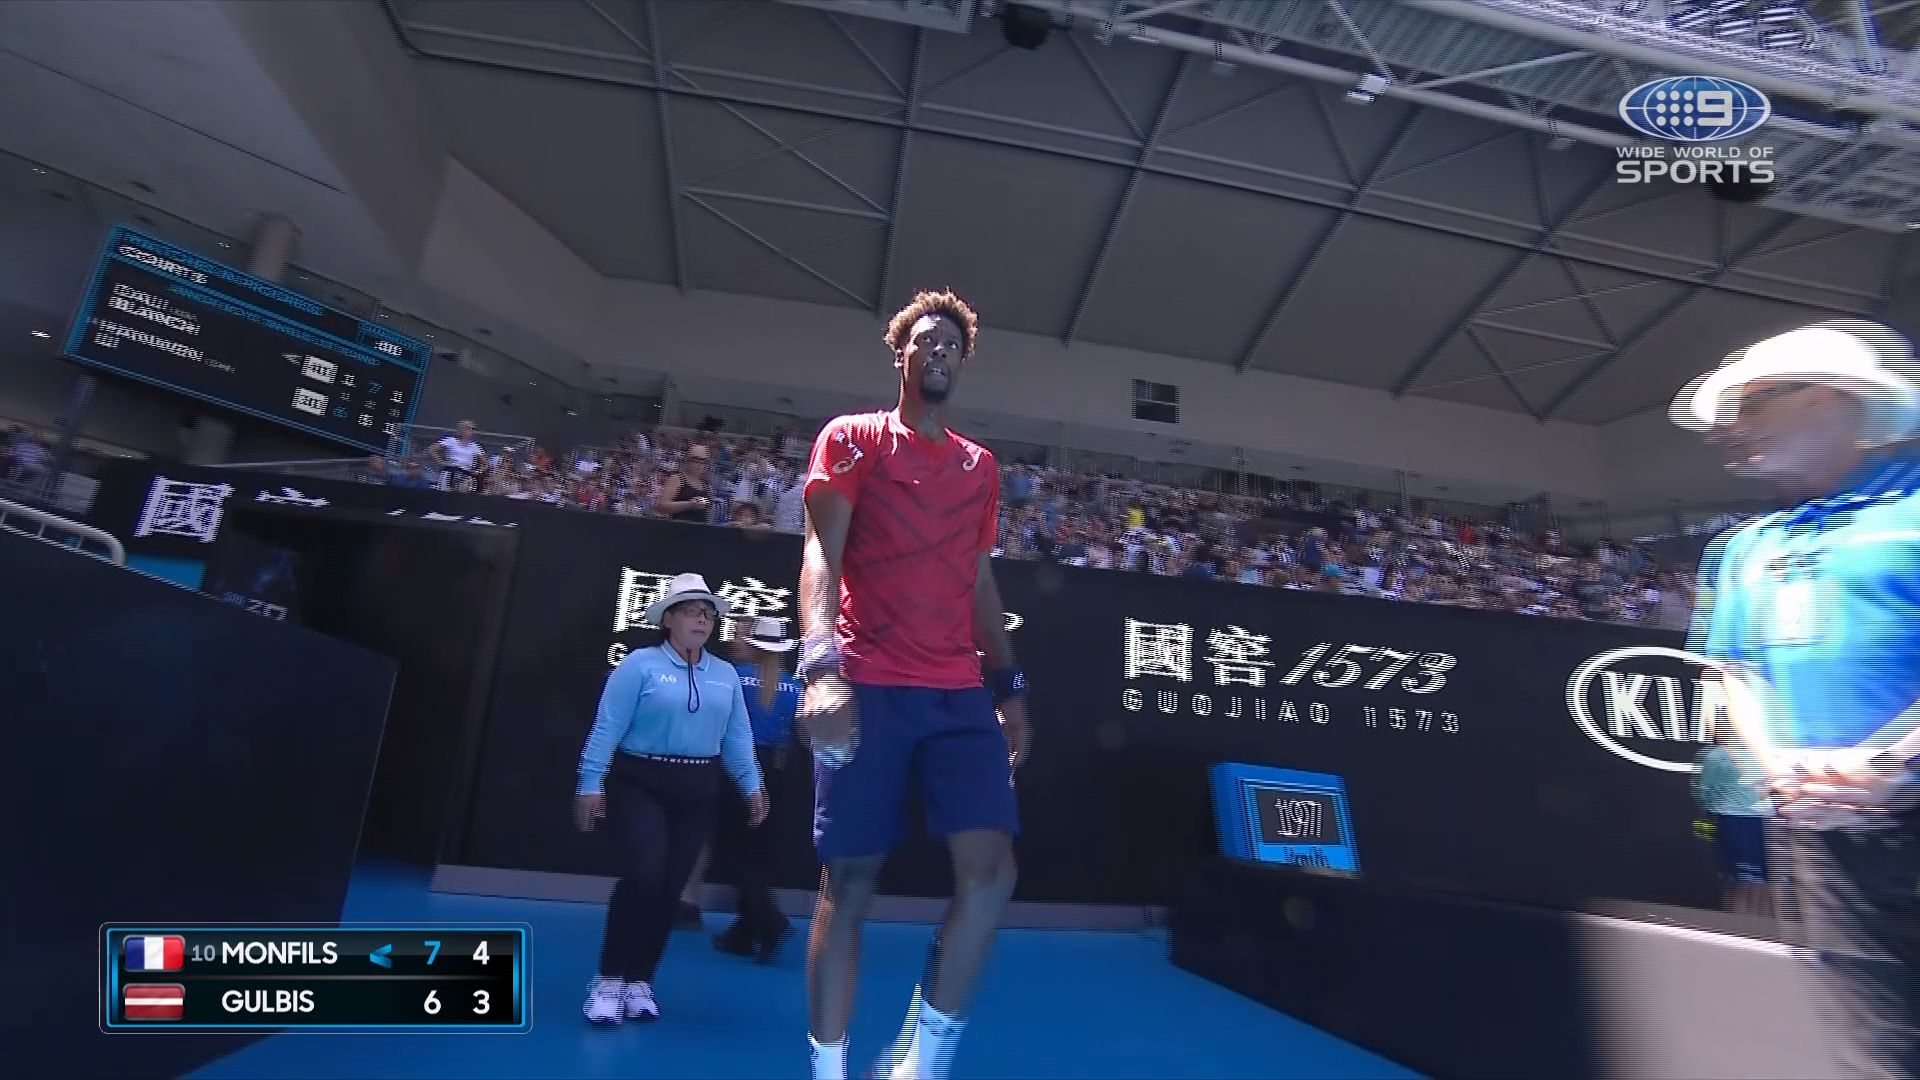 Gael Monfils through to third-round after stunning commentators with 'bizarre' mid-match exit